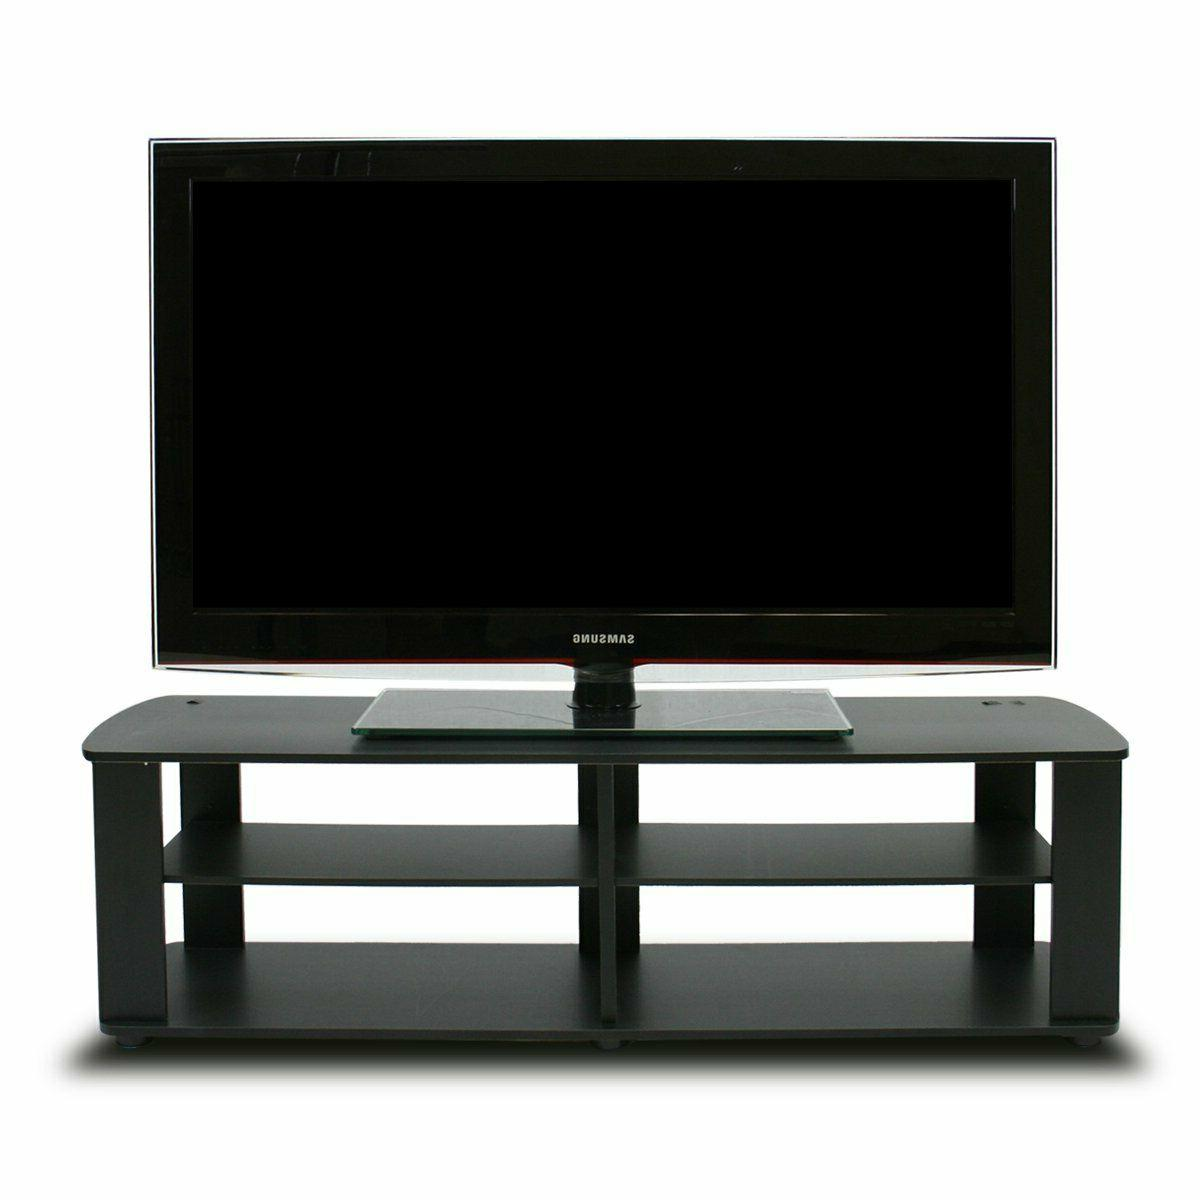 stylish tv stand up to 50 inch